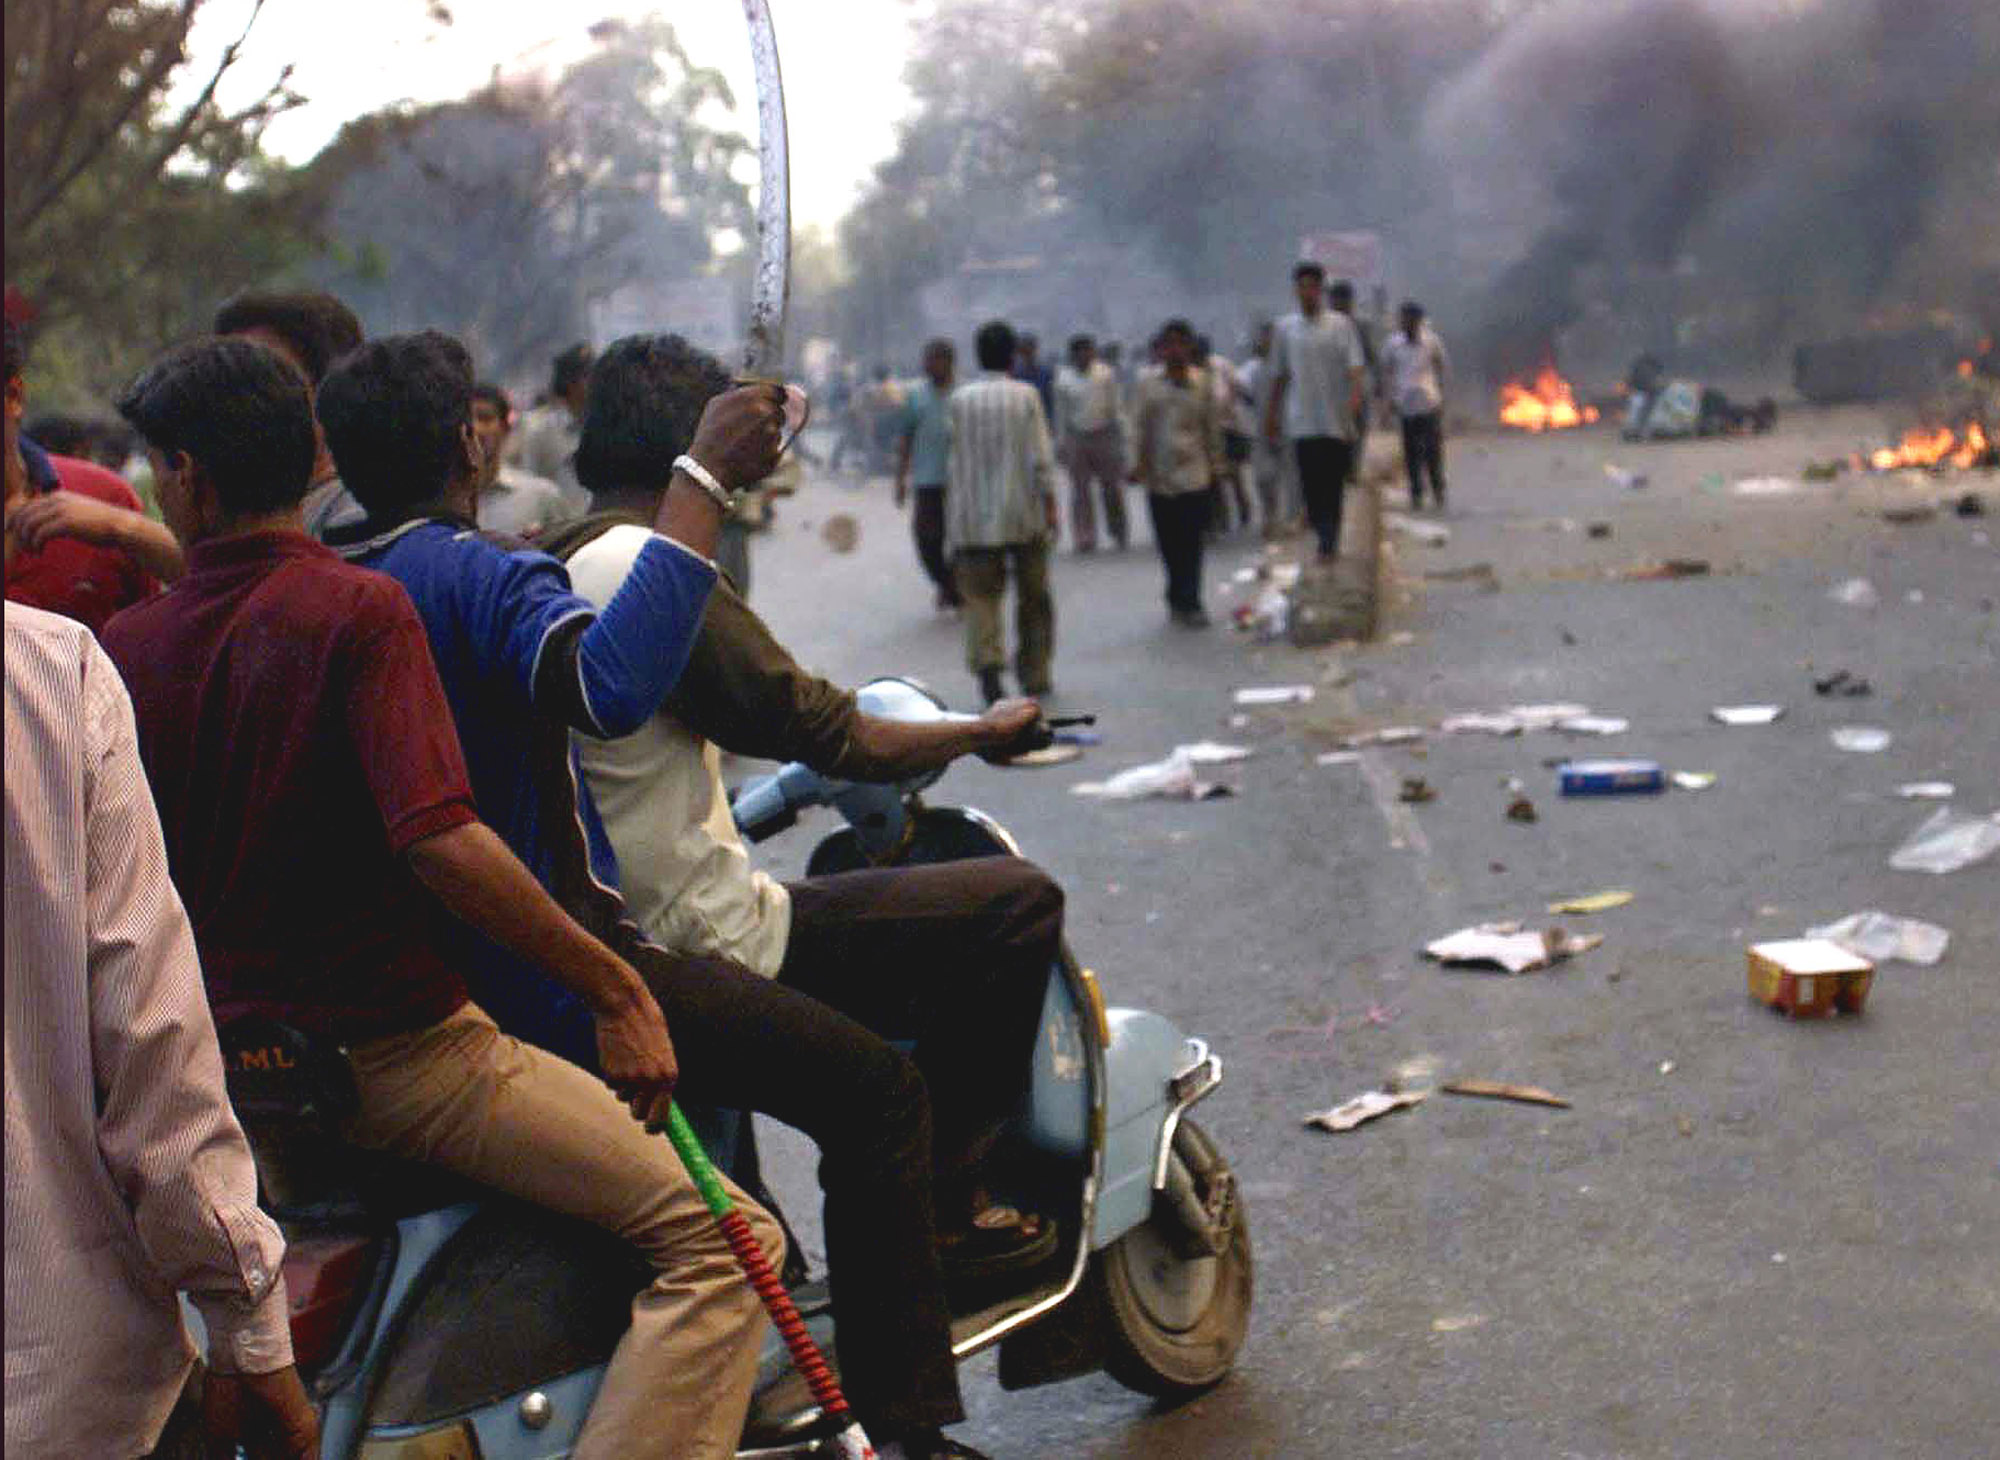 Youths with swords and sticks ride through a street of Ahmadabad, India Thursday, Feb. 28, 2002, a day after a Muslim mob attacked a train, killing 58 people in the Indian state of Gujarat. The city of Ahmadabad was besieged by violence on Thursday to avenge the attack. (AP Photo/Manish Swarup)